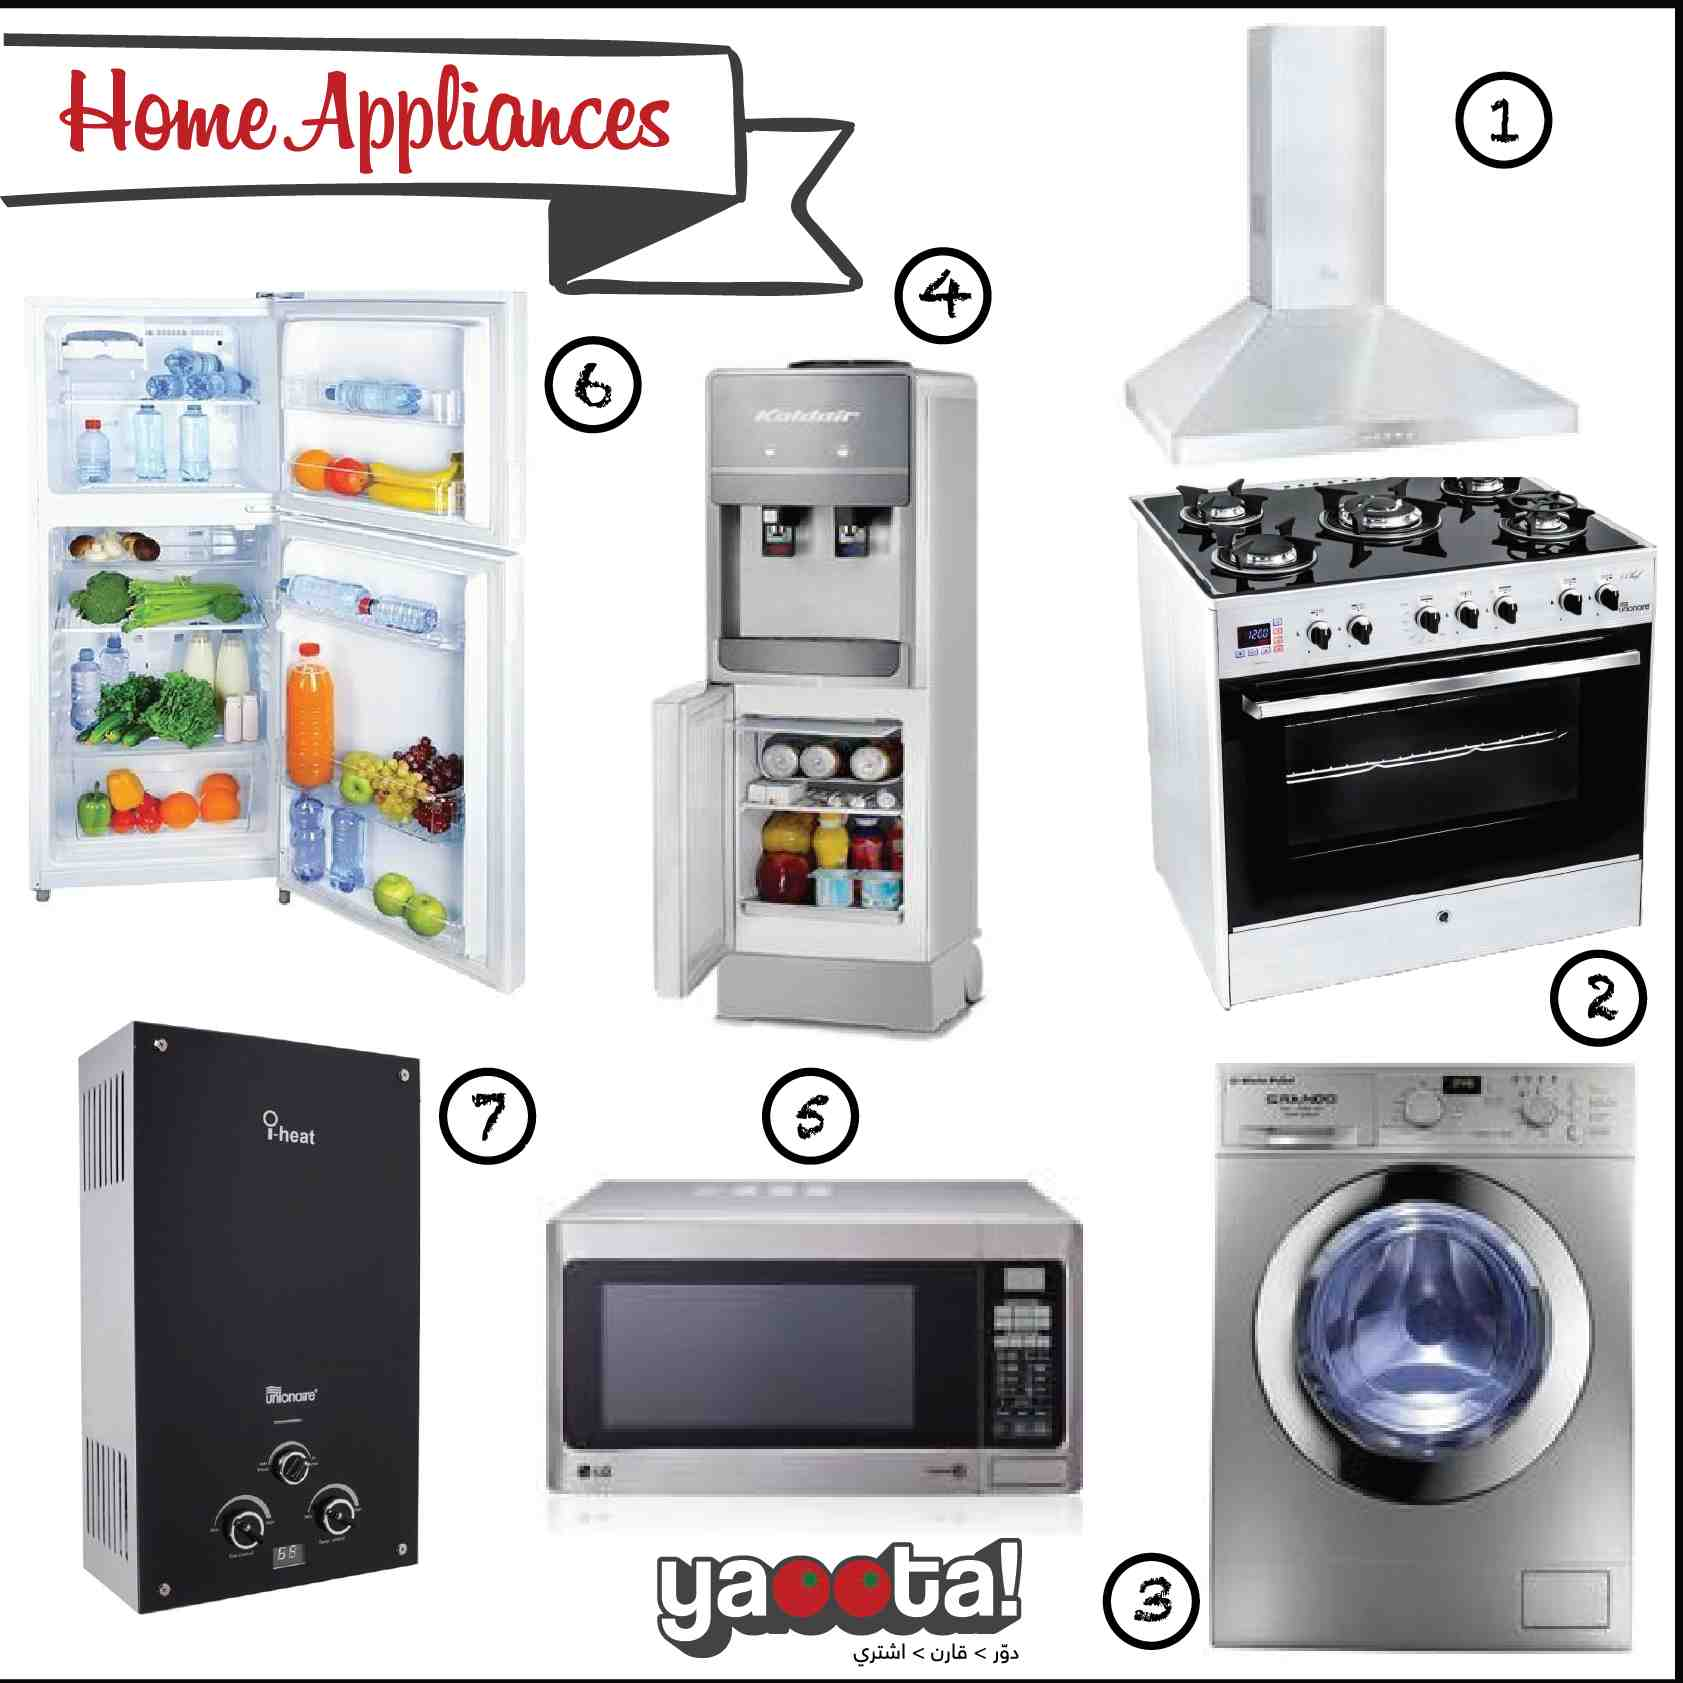 The Top Best-selling Home Appliances in Egypt in 2016